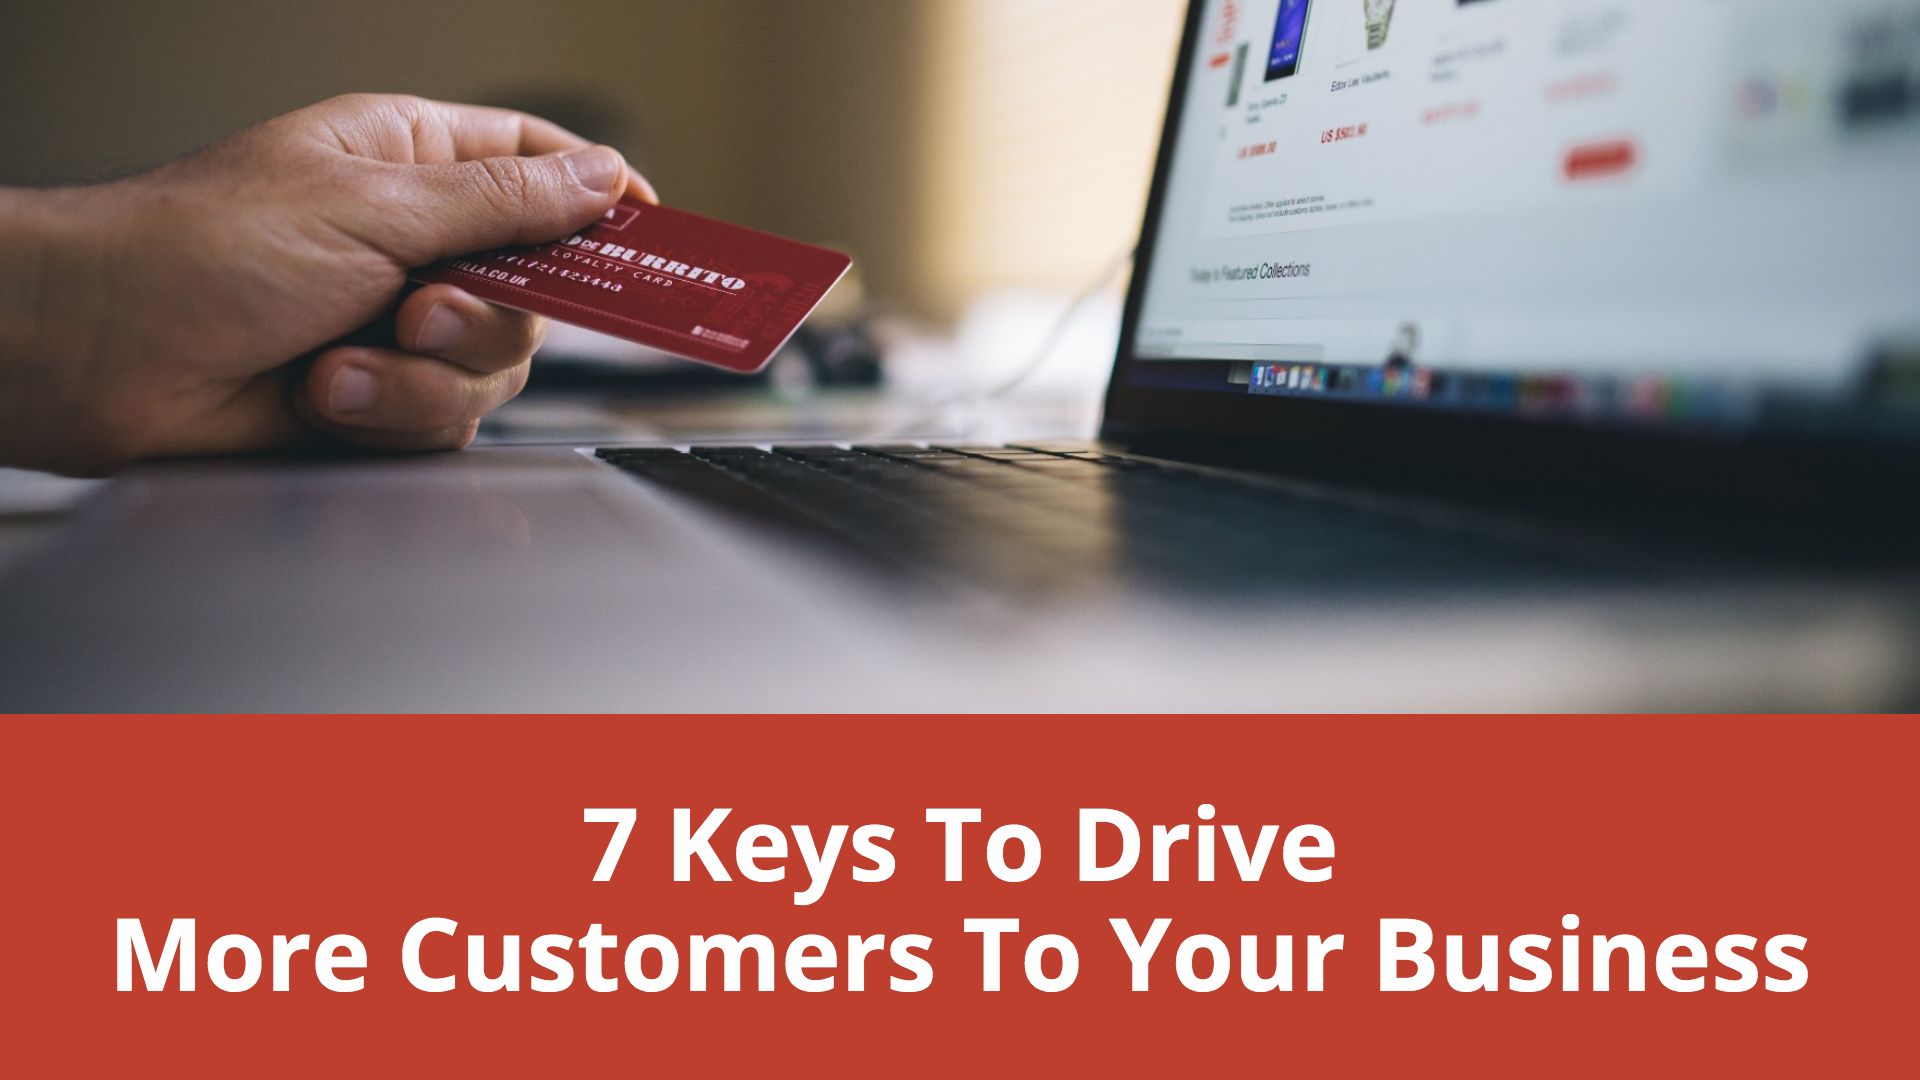 7 Keys To Driving More Customers To Your Business in 2020